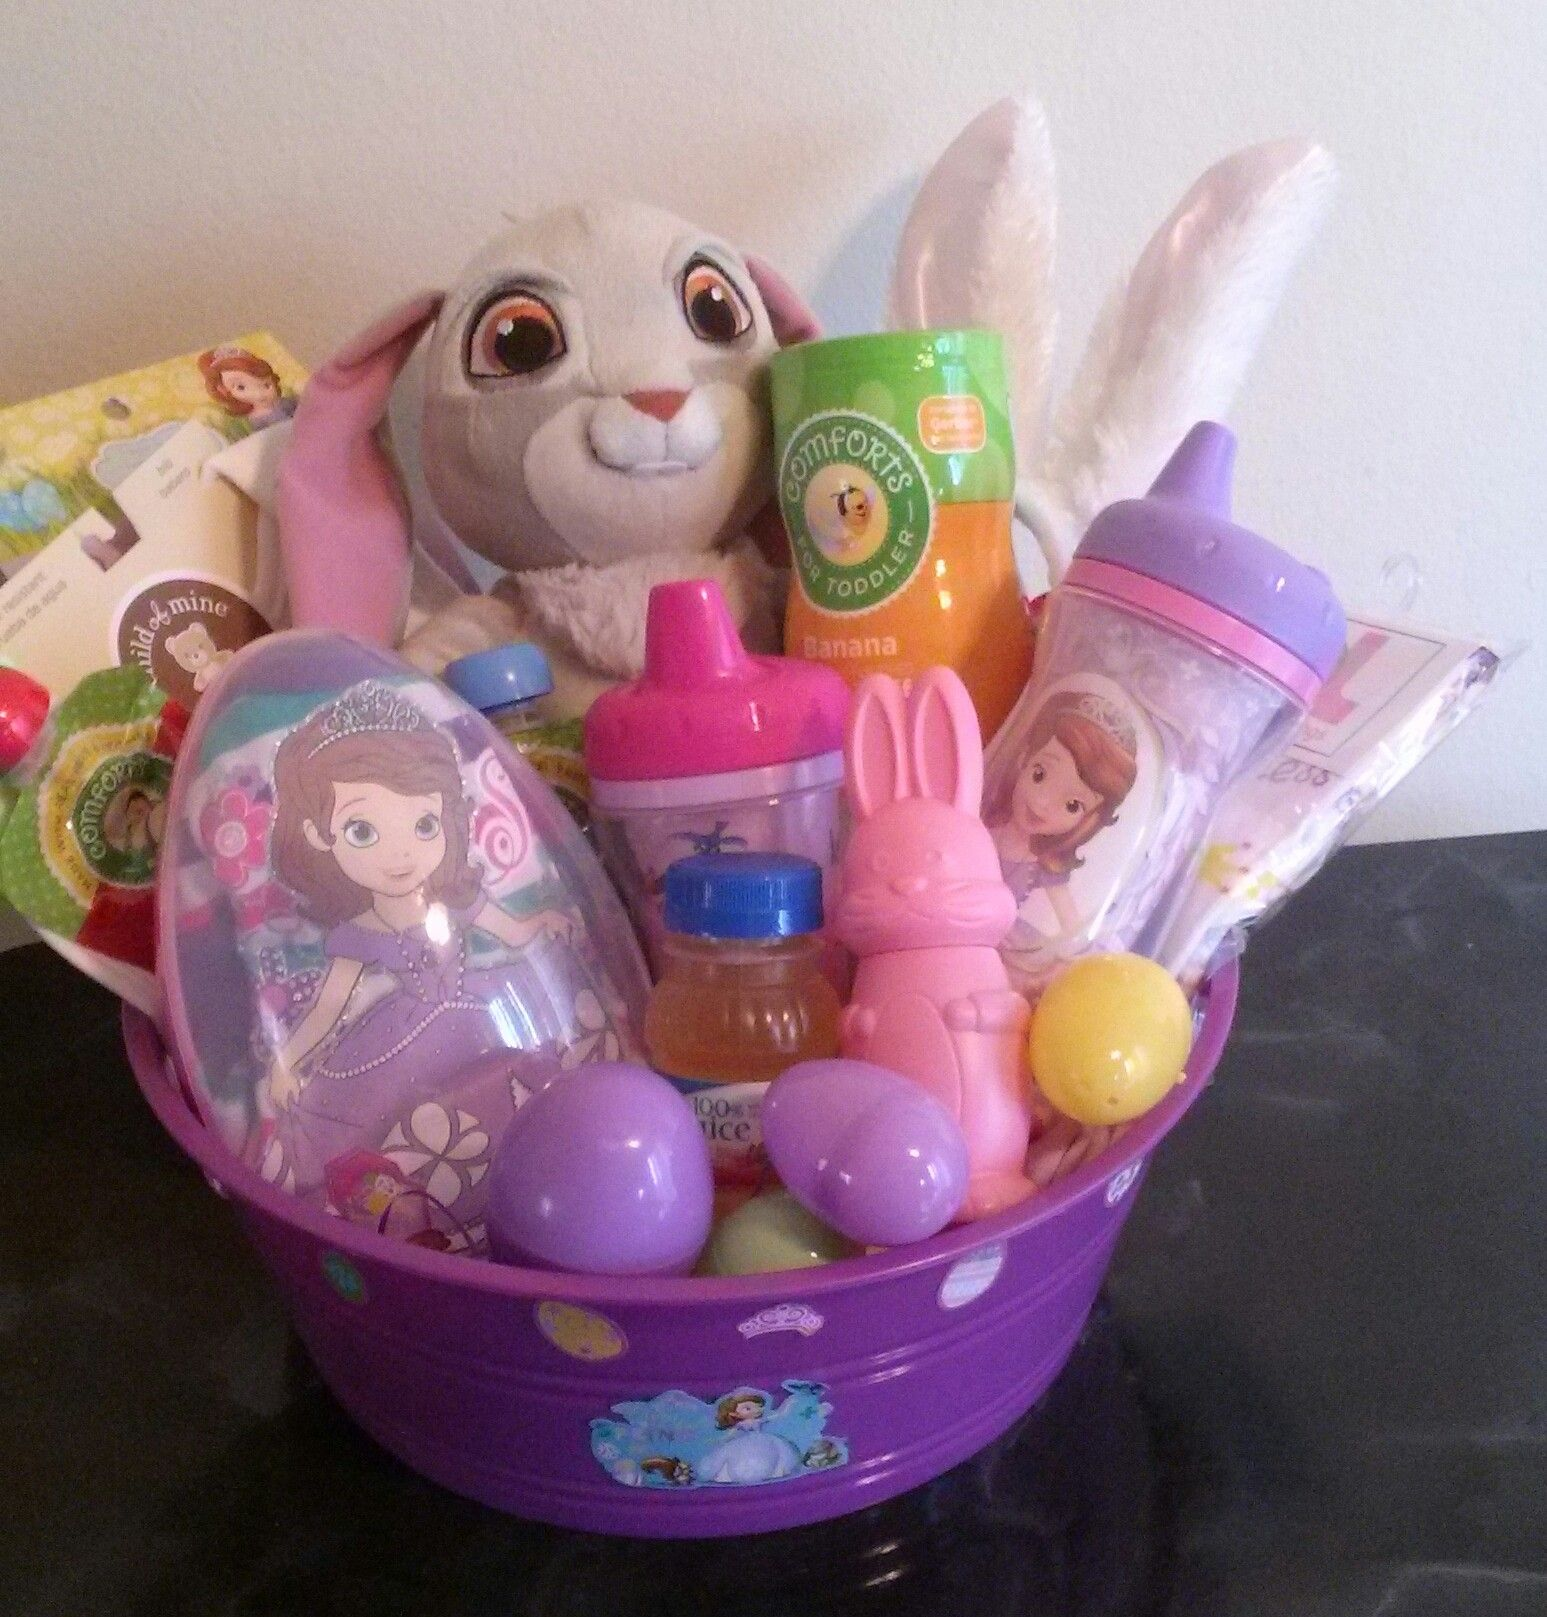 Easter basket ideas for 8 month old girl my blog pinterest easter basket ideas for 8 month old girl negle Gallery